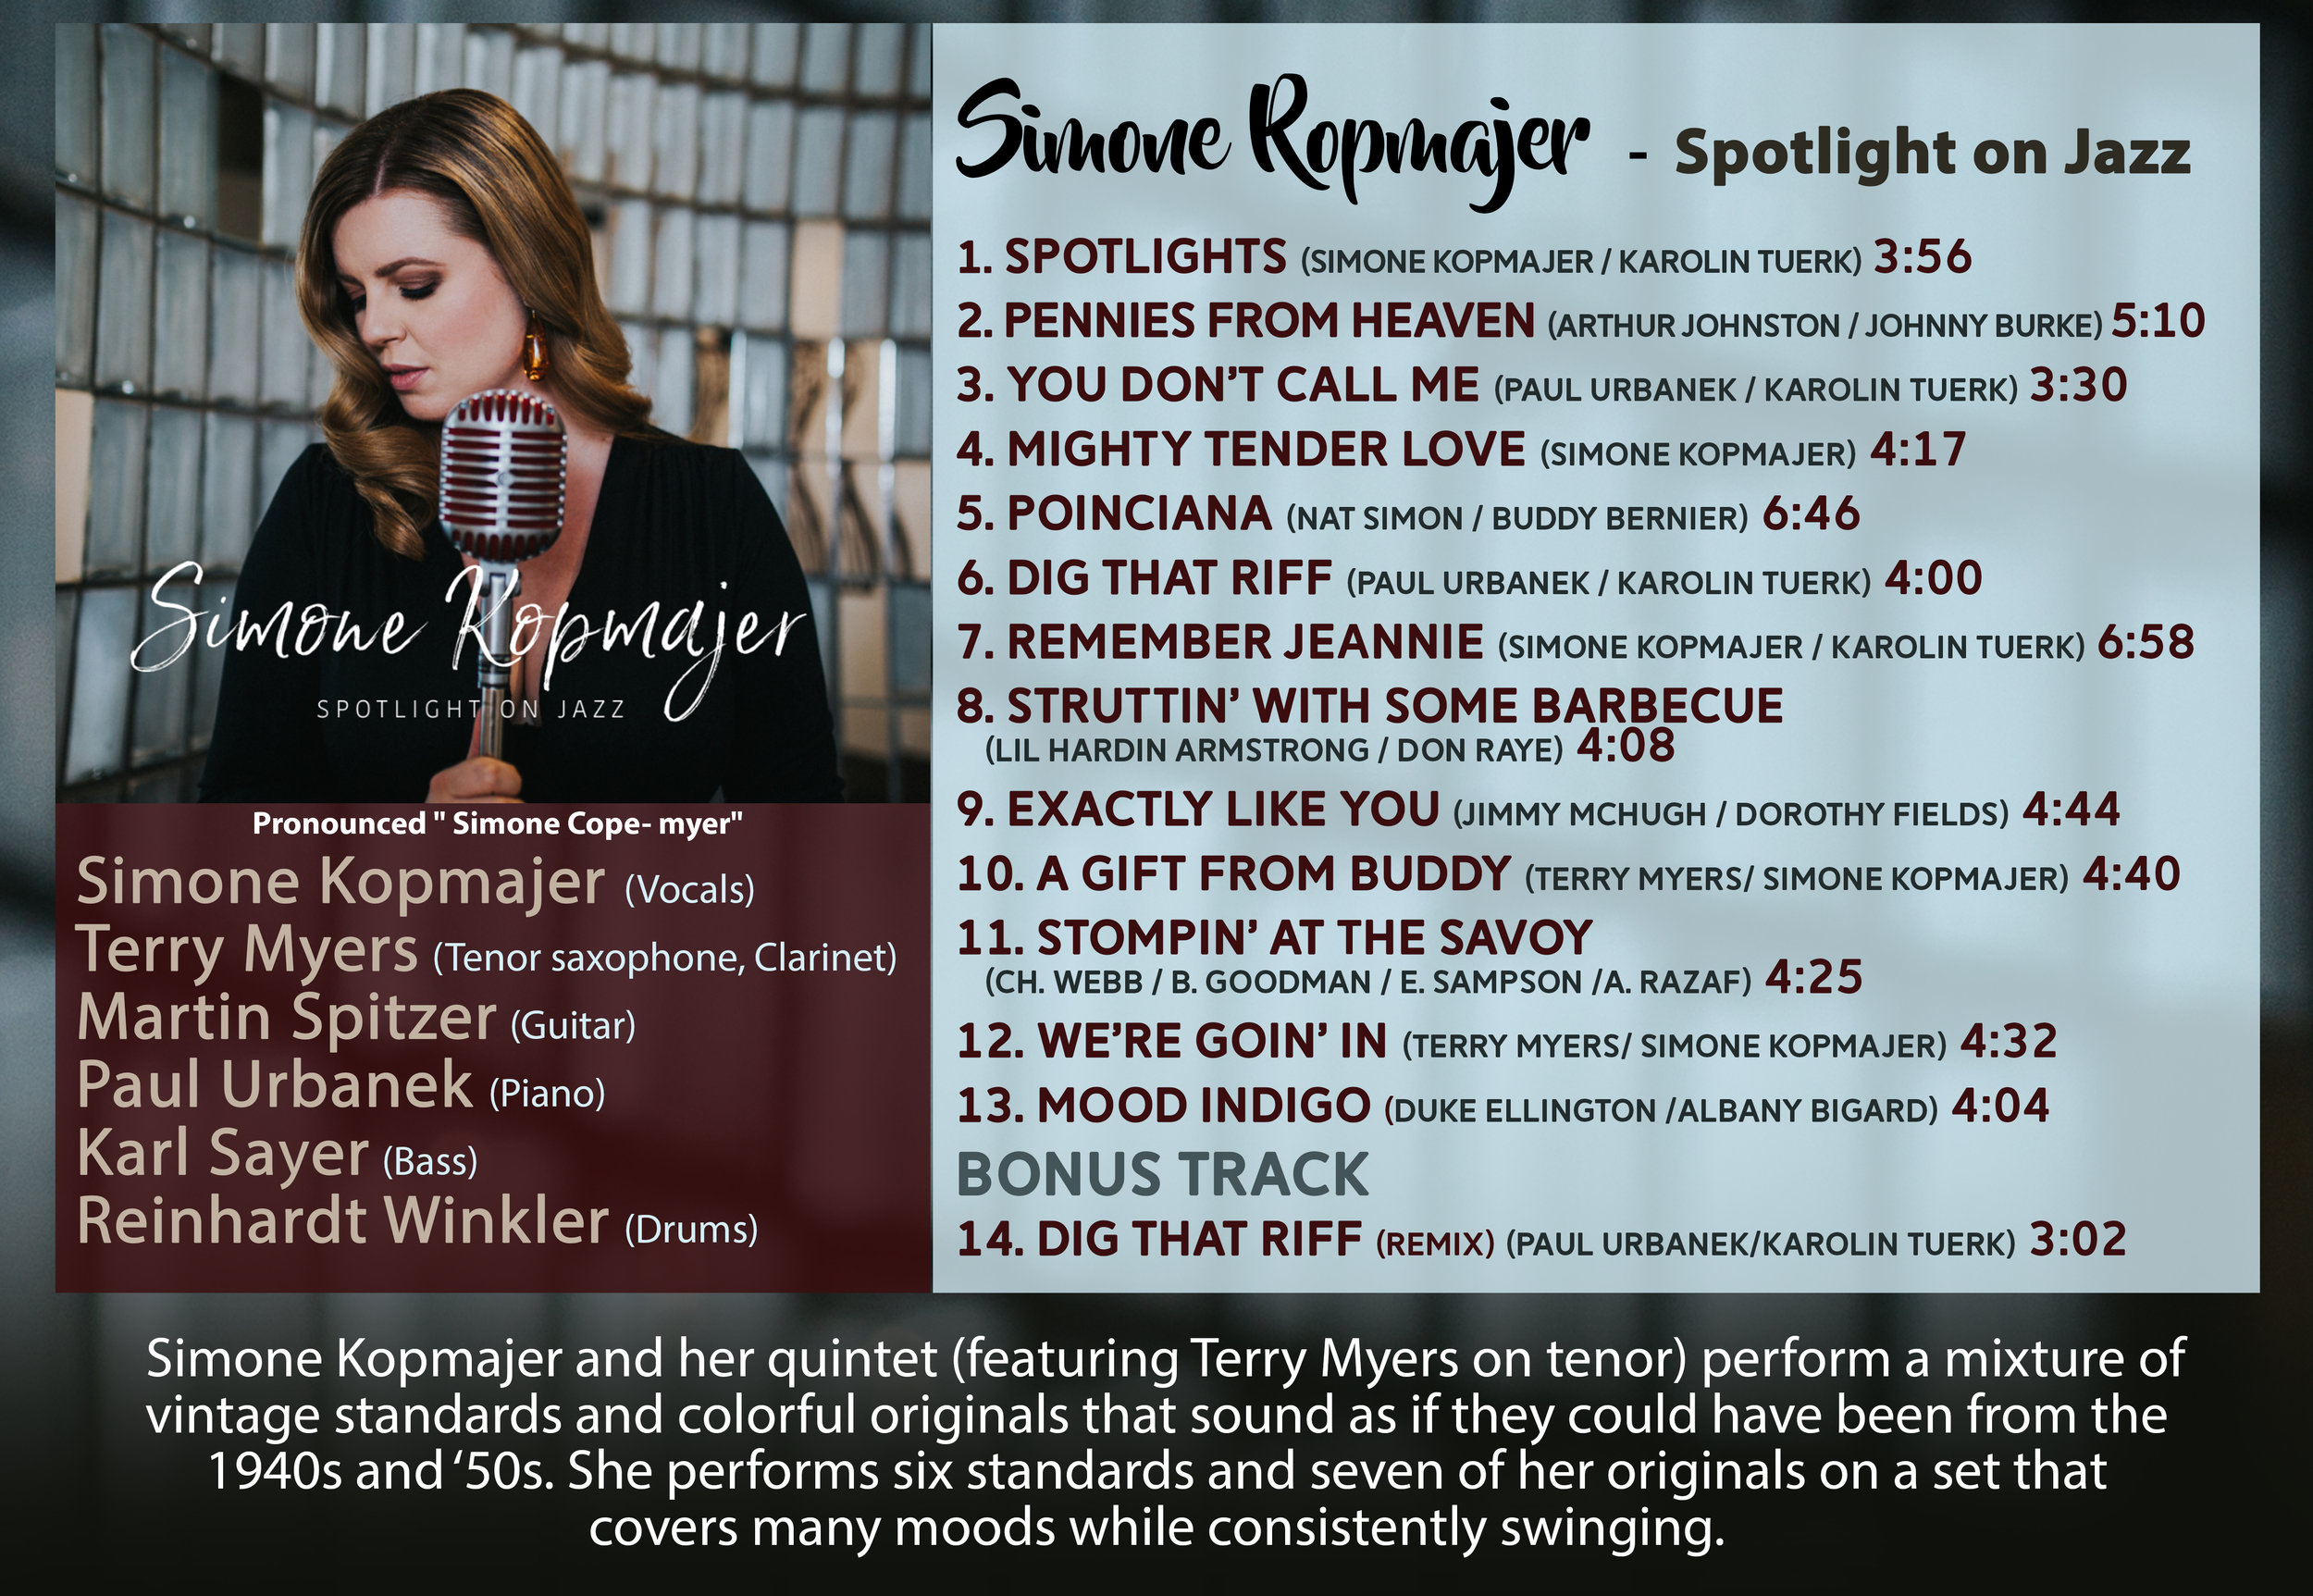 Banner_Simone Kopmajer_Spotlight on Jazz.jpg